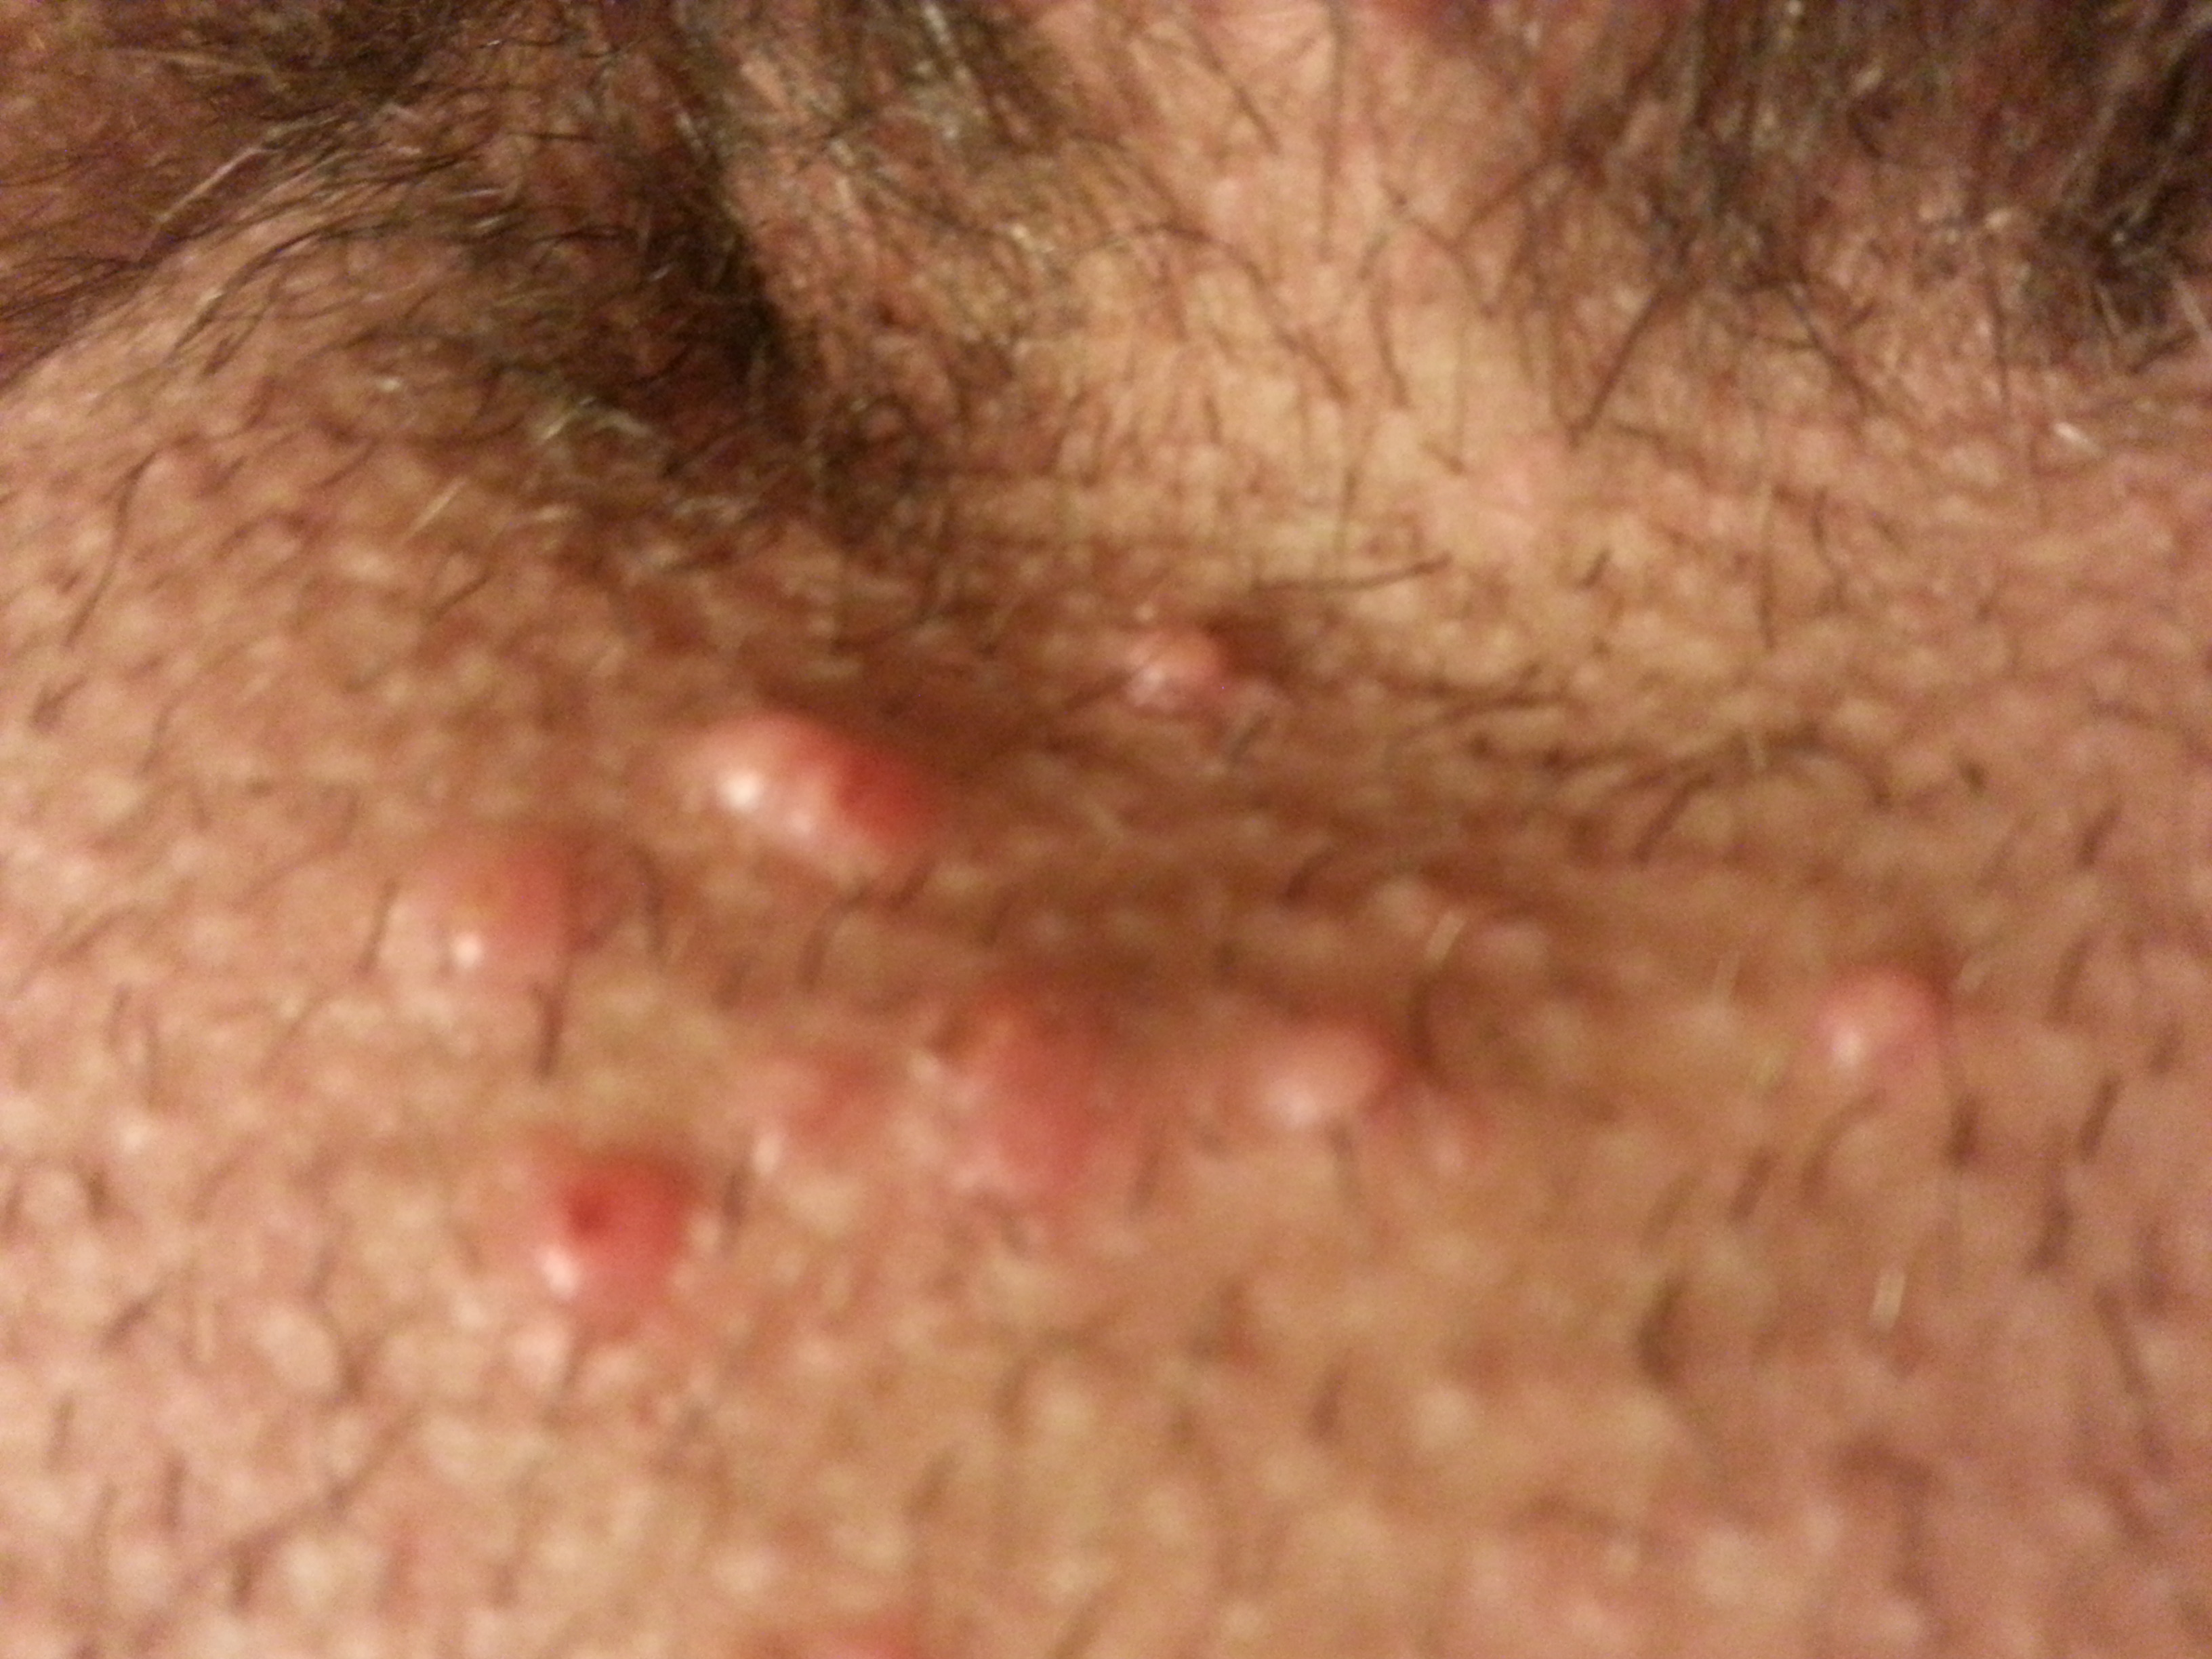 Ringworm Pictures: Rash, Skin Infections, Itching, Home ...